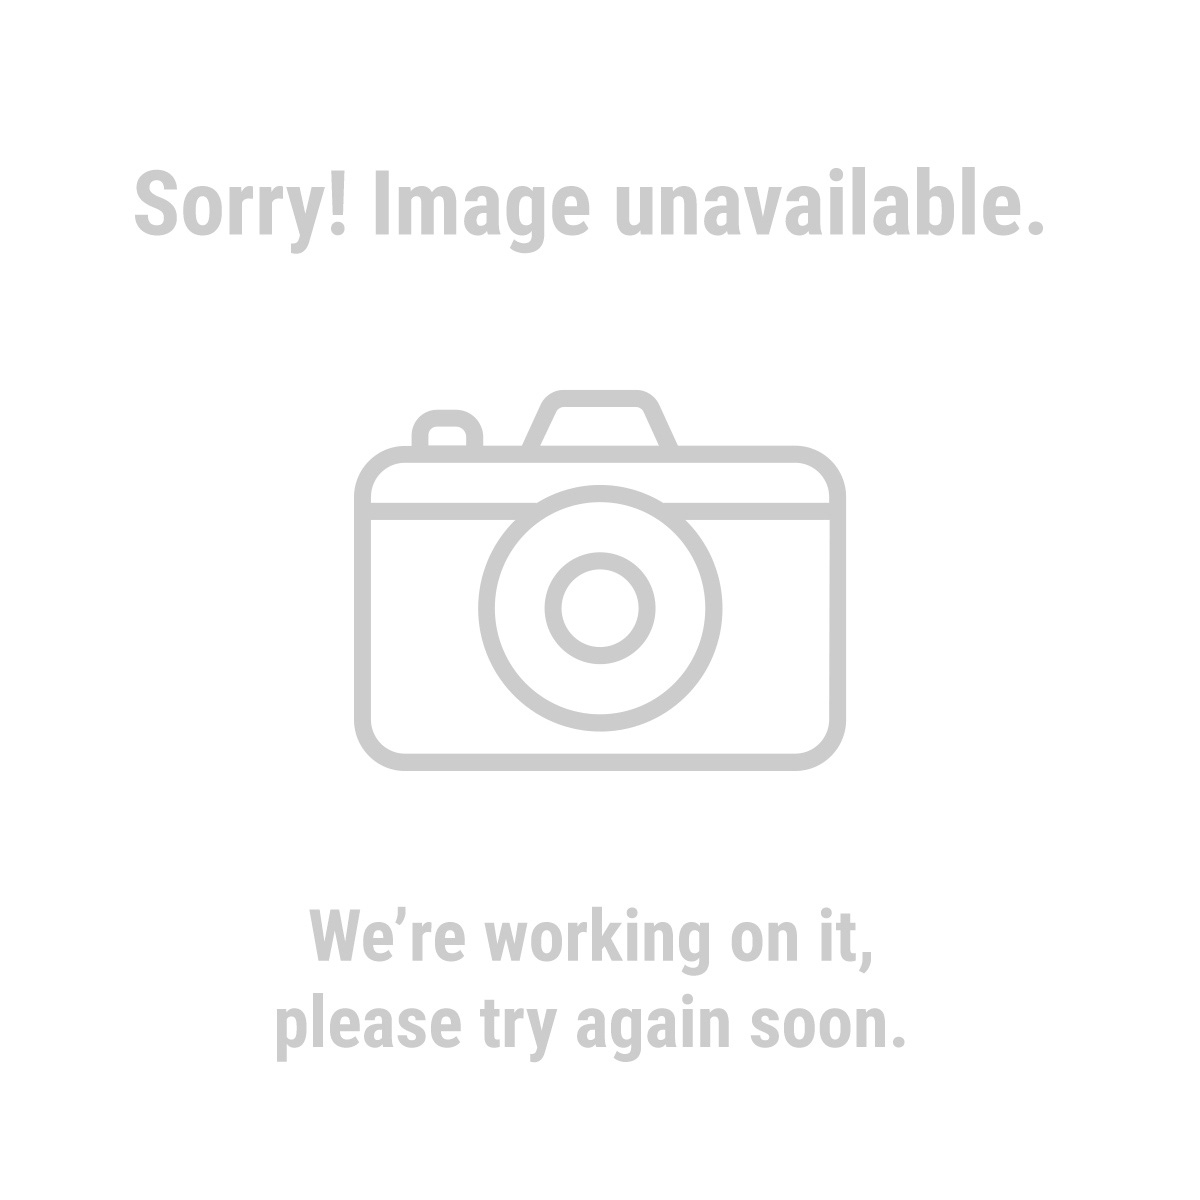 ... powertoolsgroup.com/harbor-freight/31-harbor-freight-router-table.htm